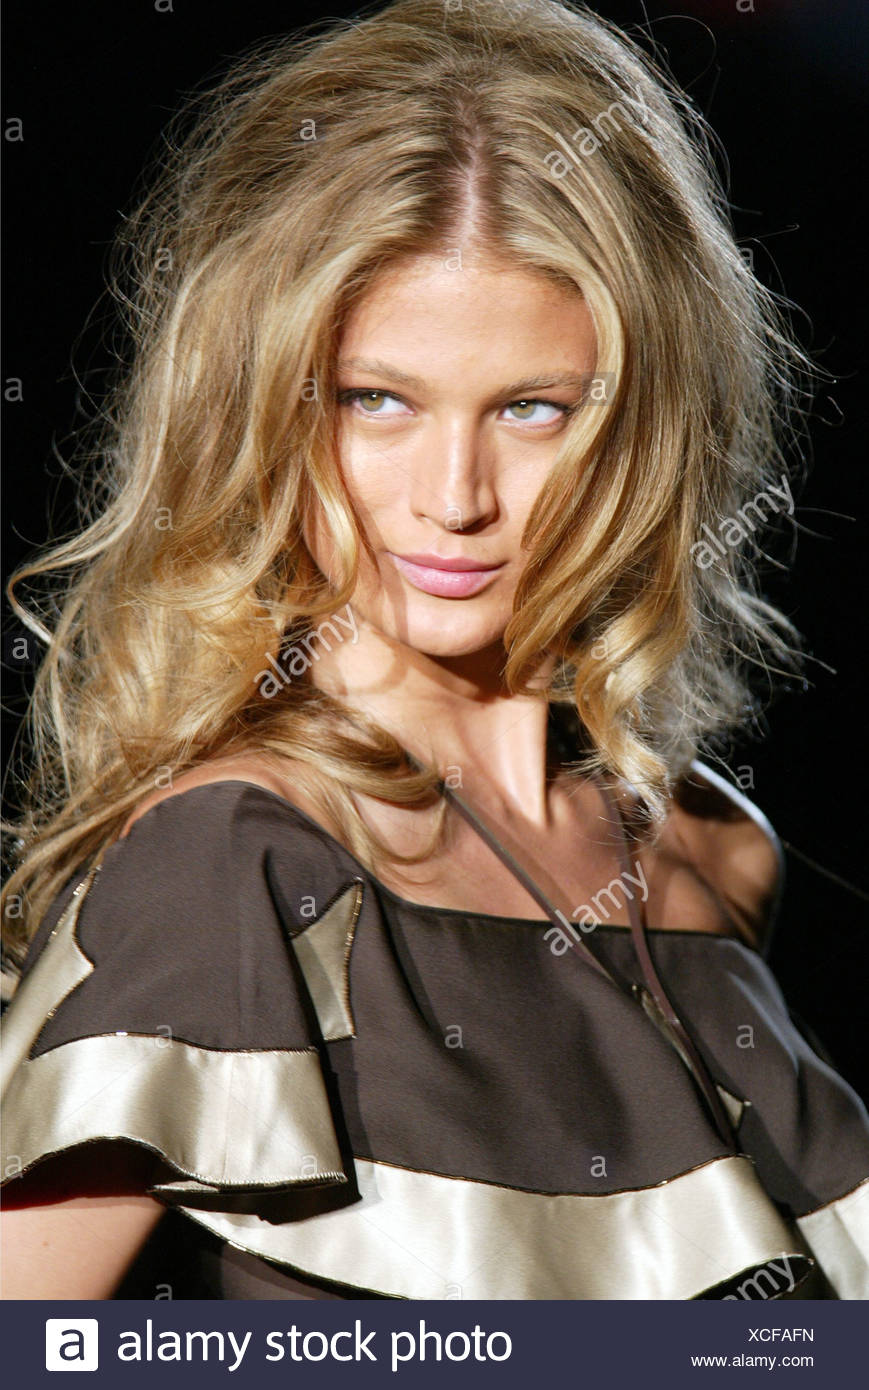 DSquared Milan Ready to Wear S S Blonde female big tousled hair wearing satin brown frilly outfit, accessorised a bola tie - Stock Image